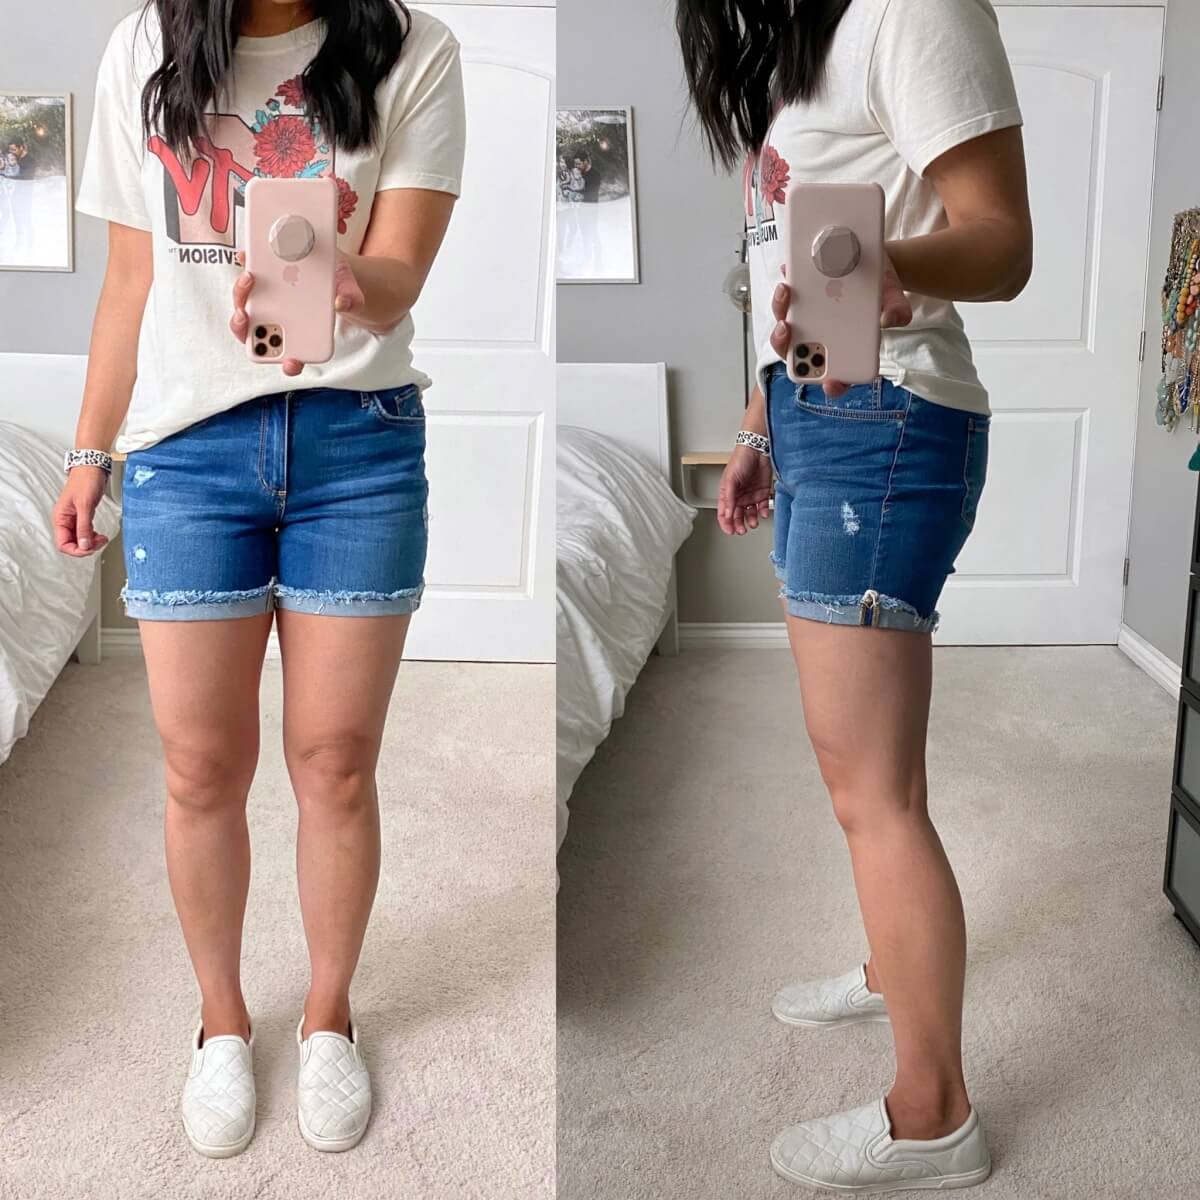 Casual Outfit: MTV tee + denim shorts + white slip-on sneakers close up side